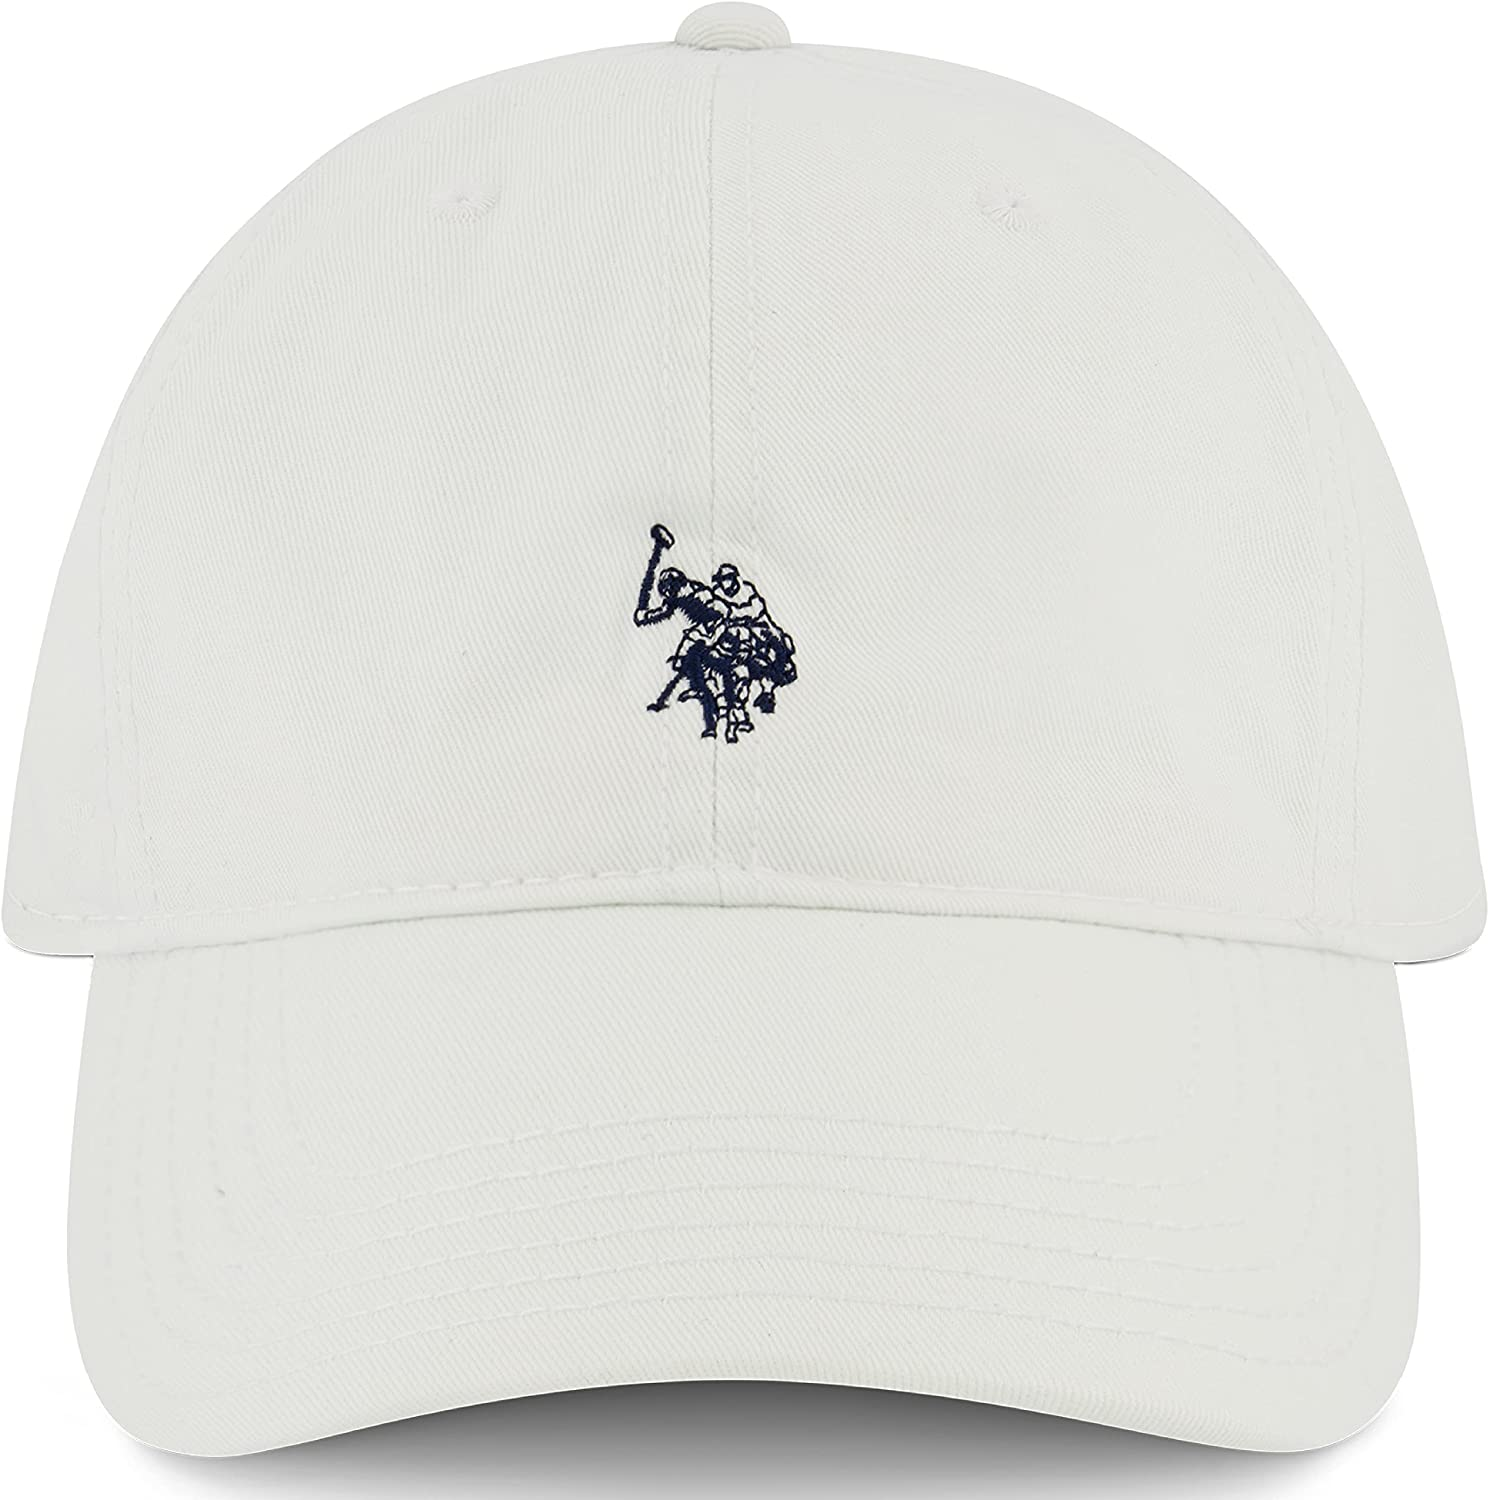 Don't miss the campaign U.S. Polo Assn. Mens Washed Cotton Basebal Adjustable Twill Trust